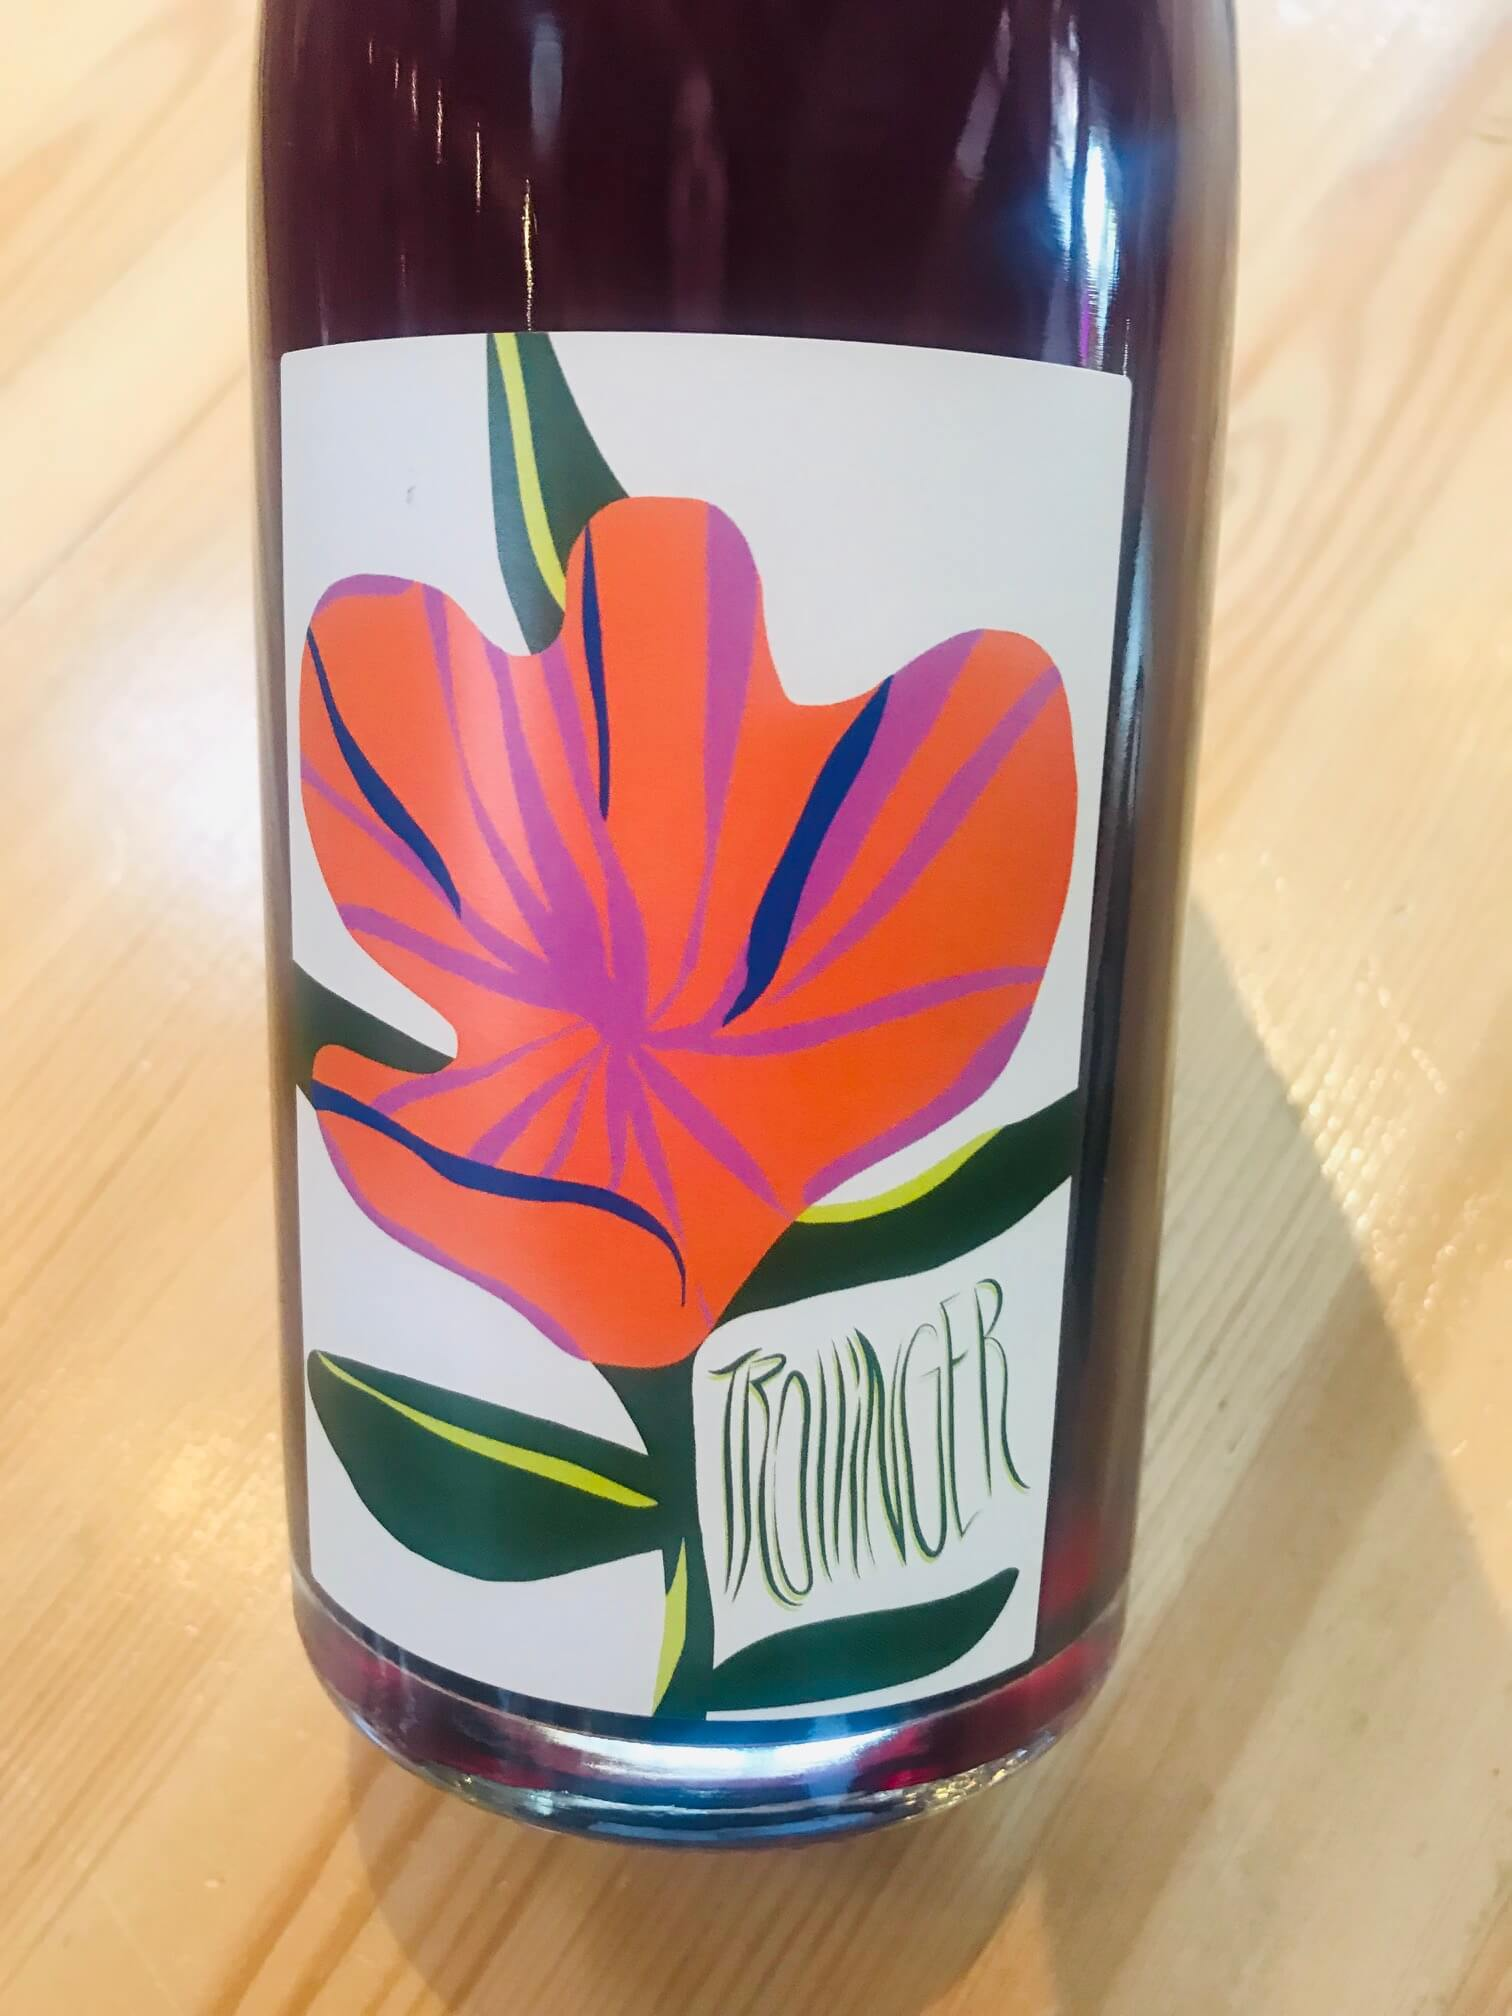 Bottle of Trollinger red wine with a cartoonish artsy red flower on the label